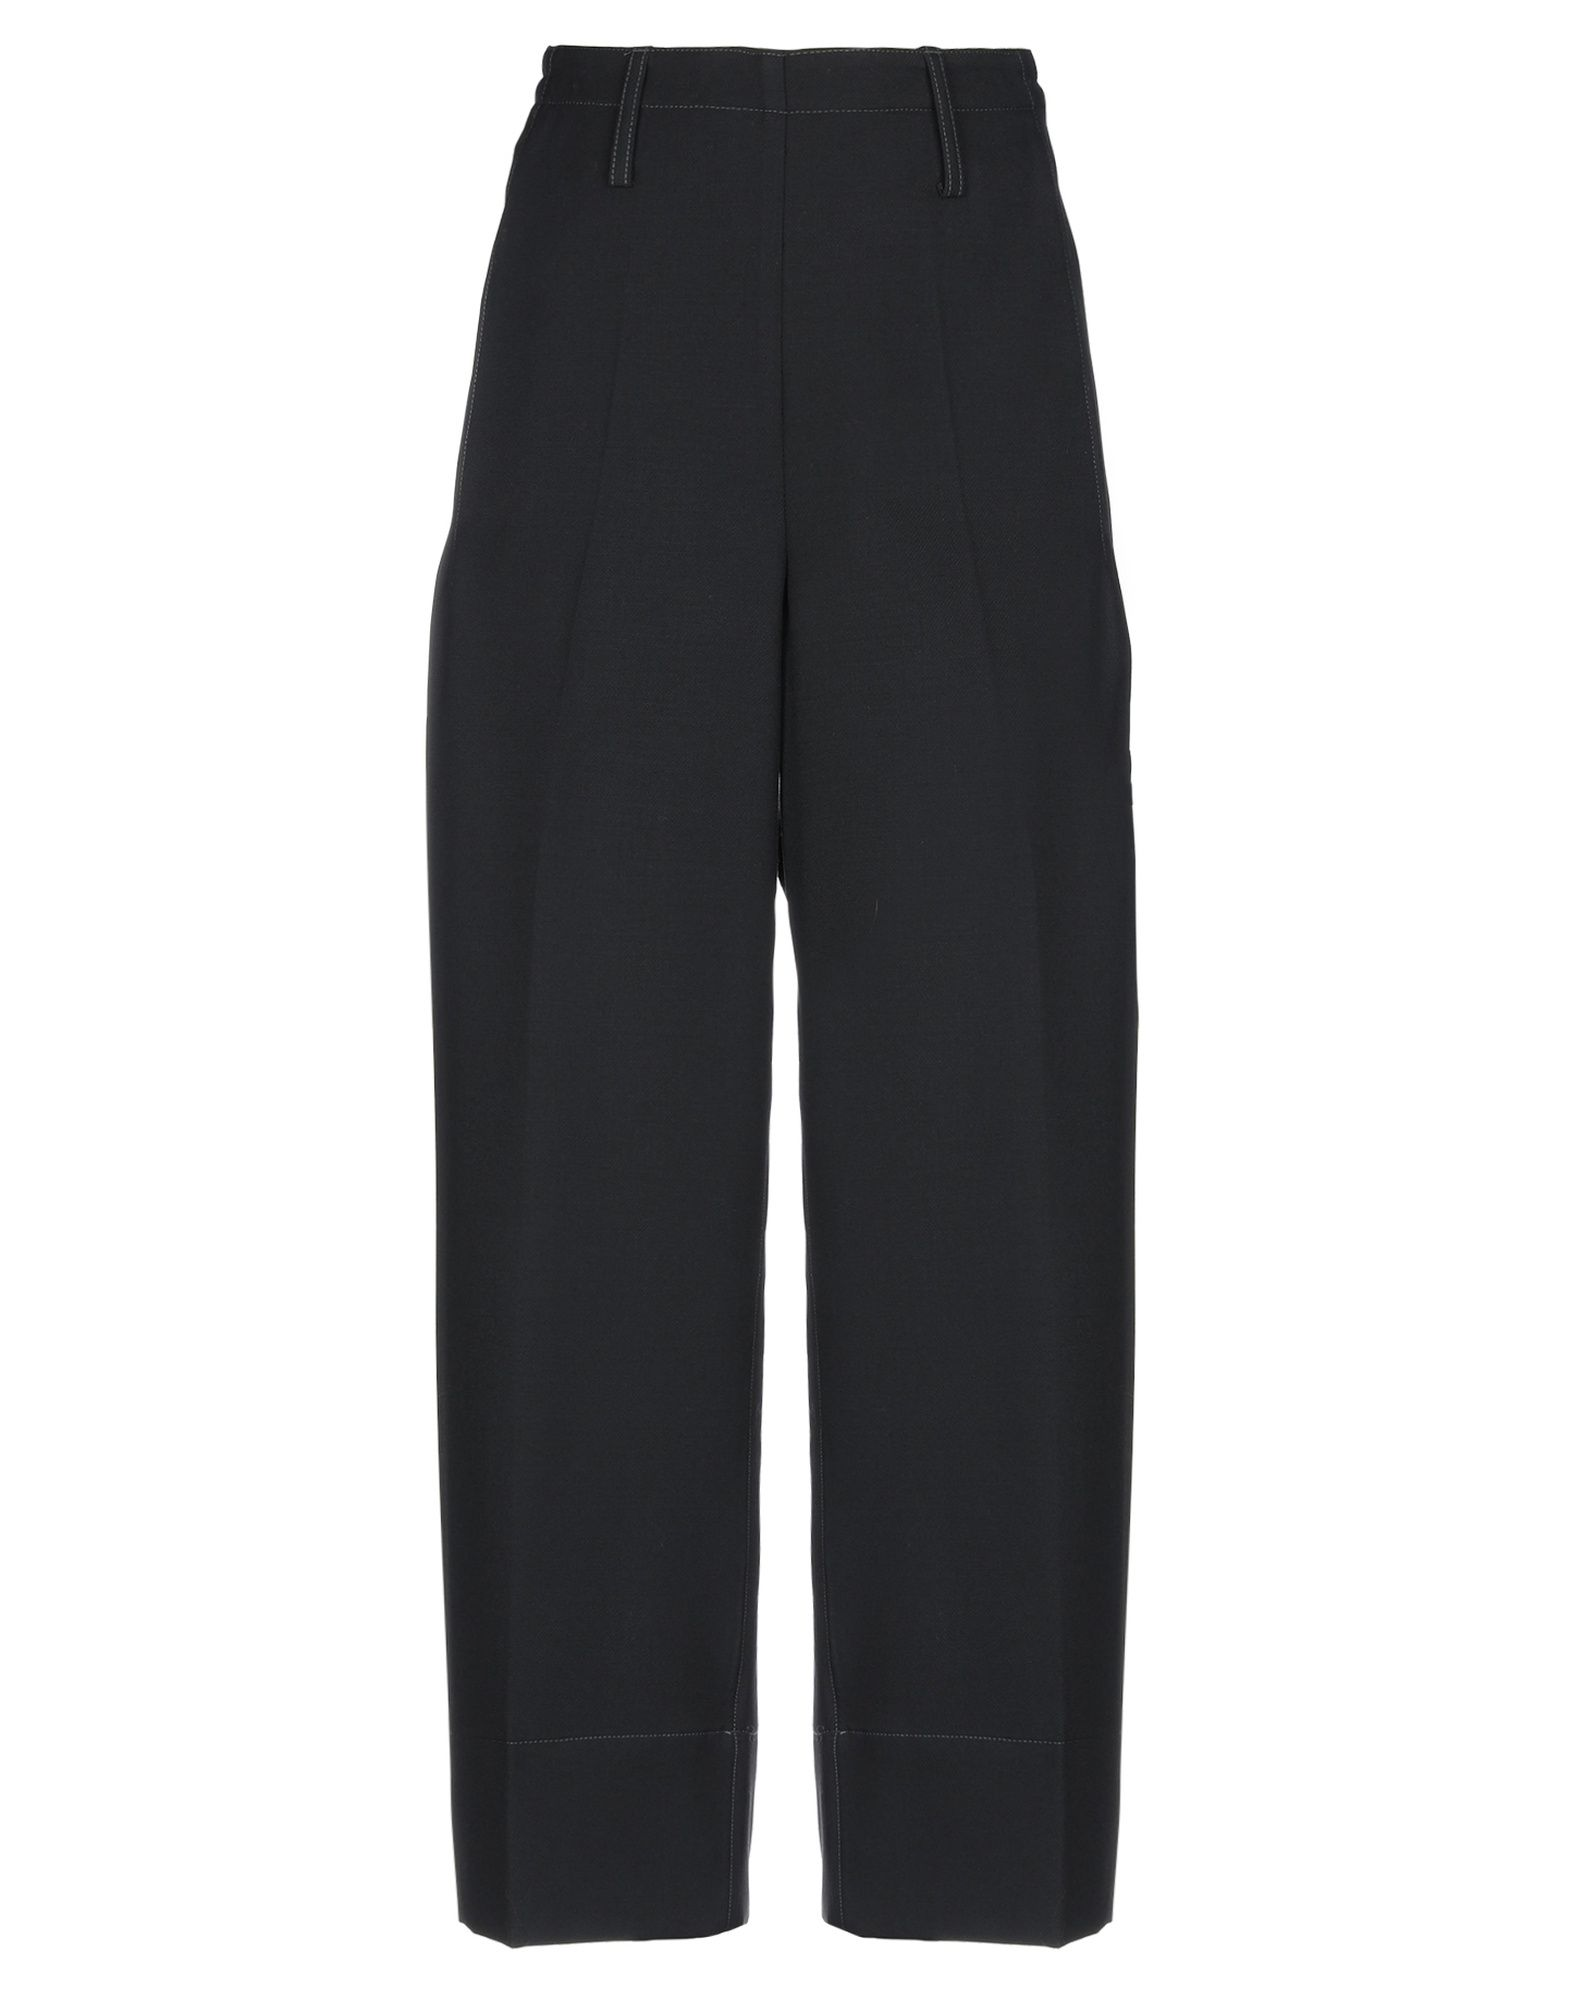 LEMAIRE | LEMAIRE Casual Pants 13339915 | Goxip